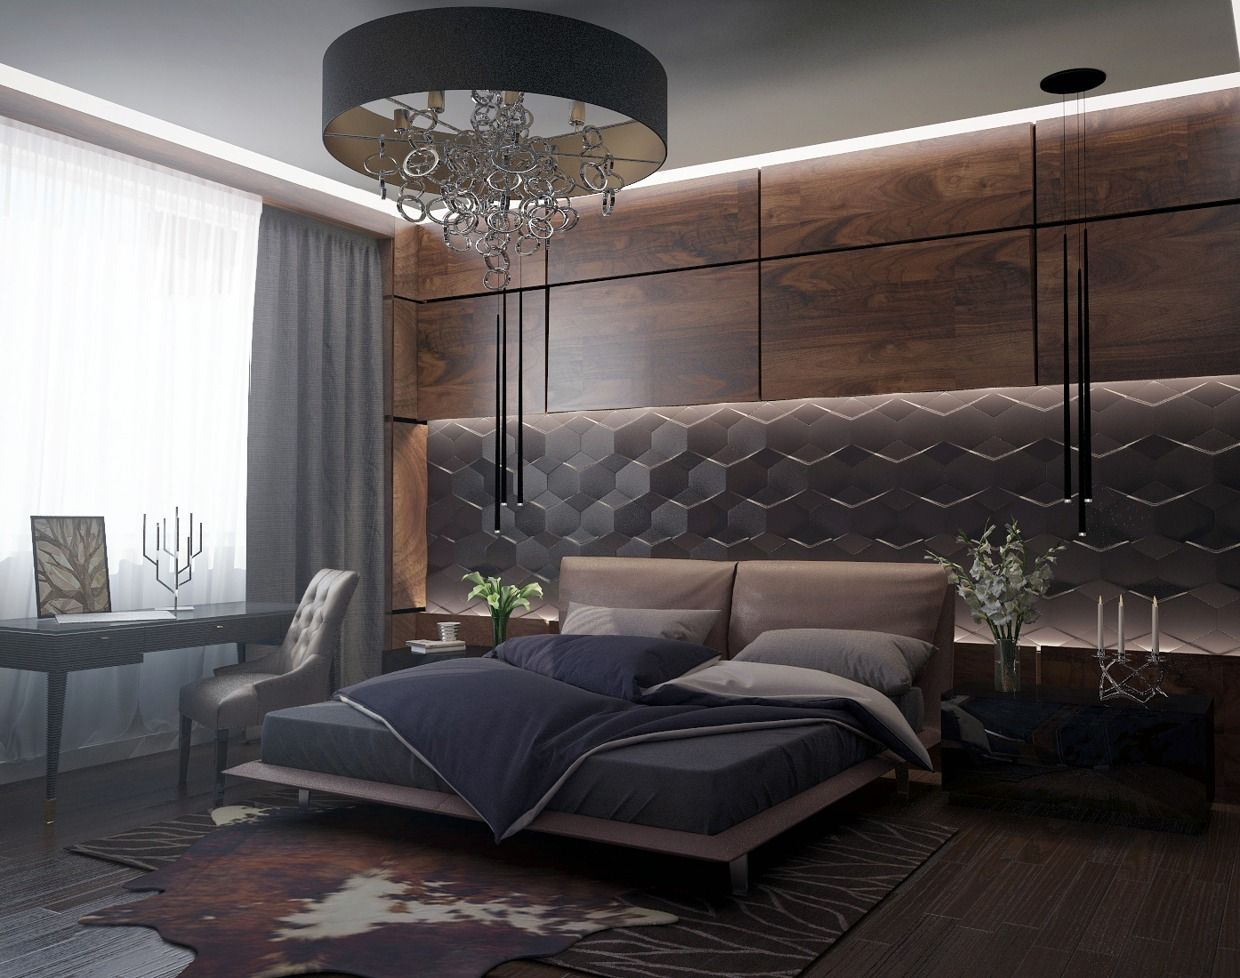 Awesome Wall Texture For Your Bedroom Decorating Ideas Wall - Texture design for bedroom wall